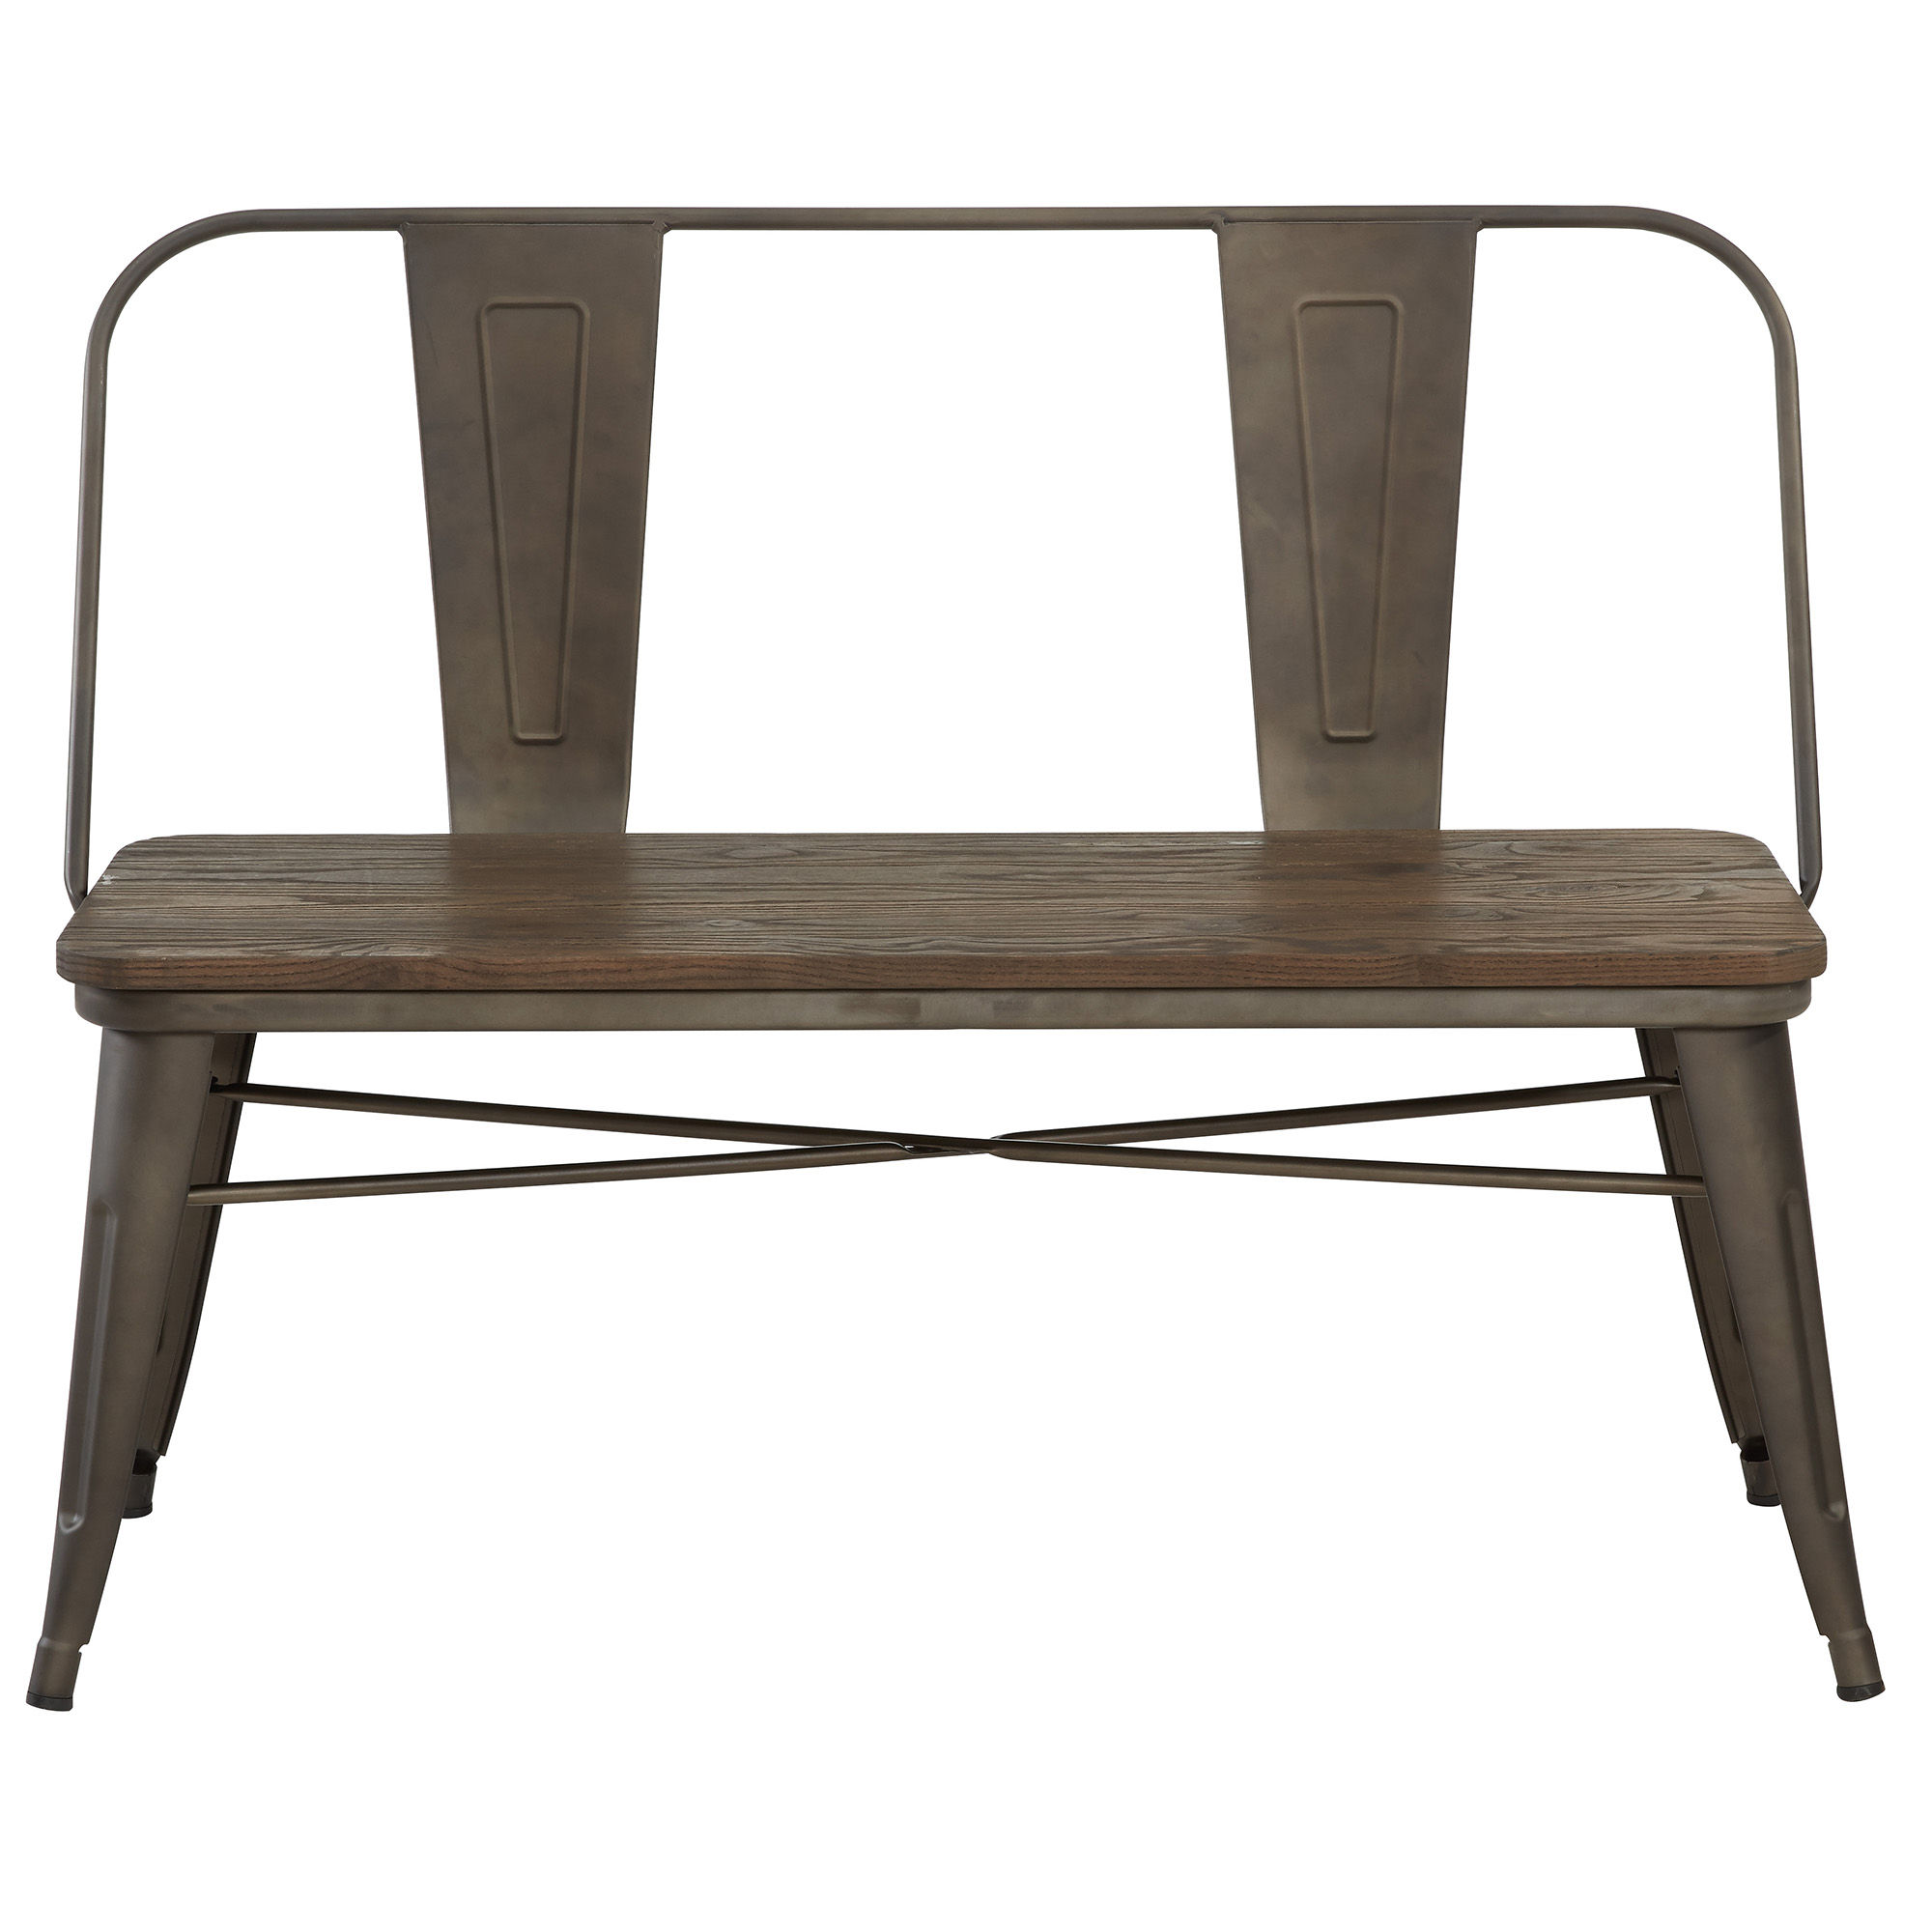 Rustic Industrial Metal & Solid Wood Bench with Back in Gunmetal